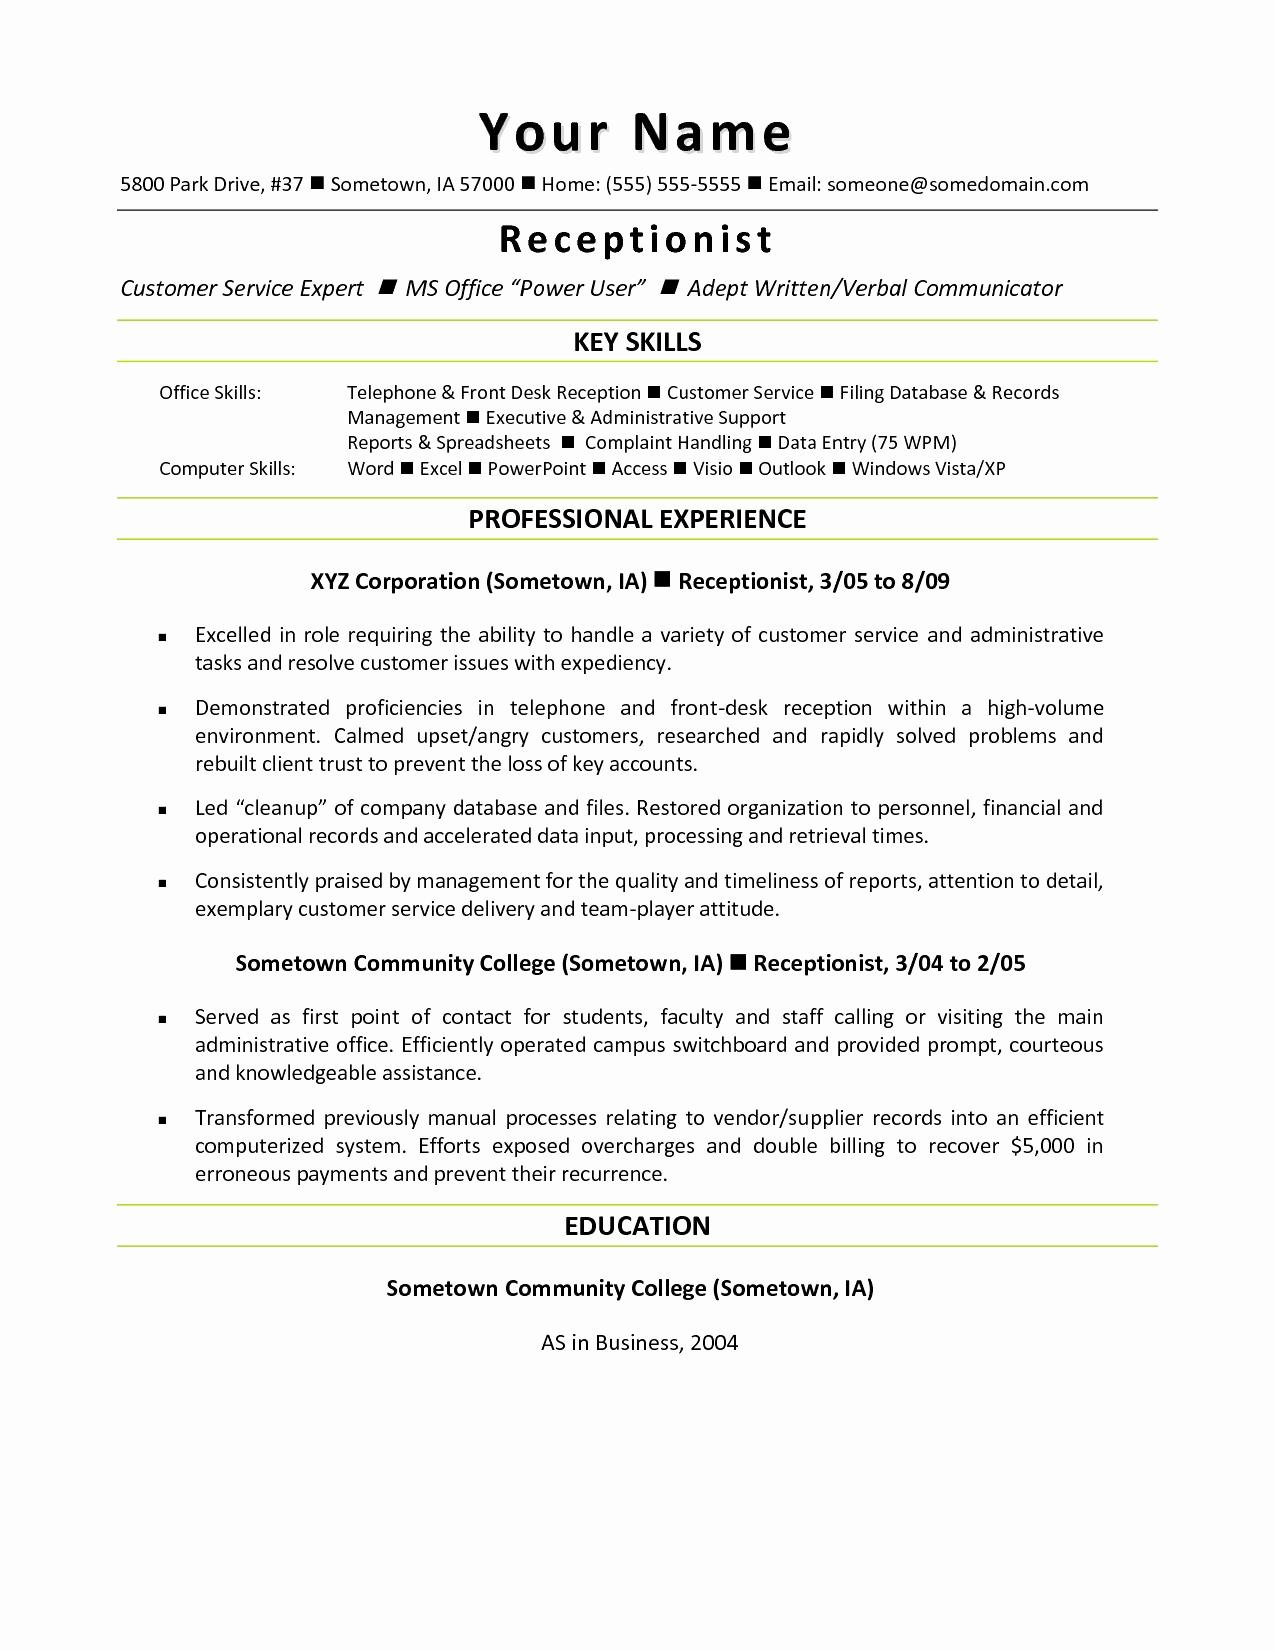 Accounting Resume Summary Examples - Resume Summary Examples Luxury Beautiful Grapher Resume Sample